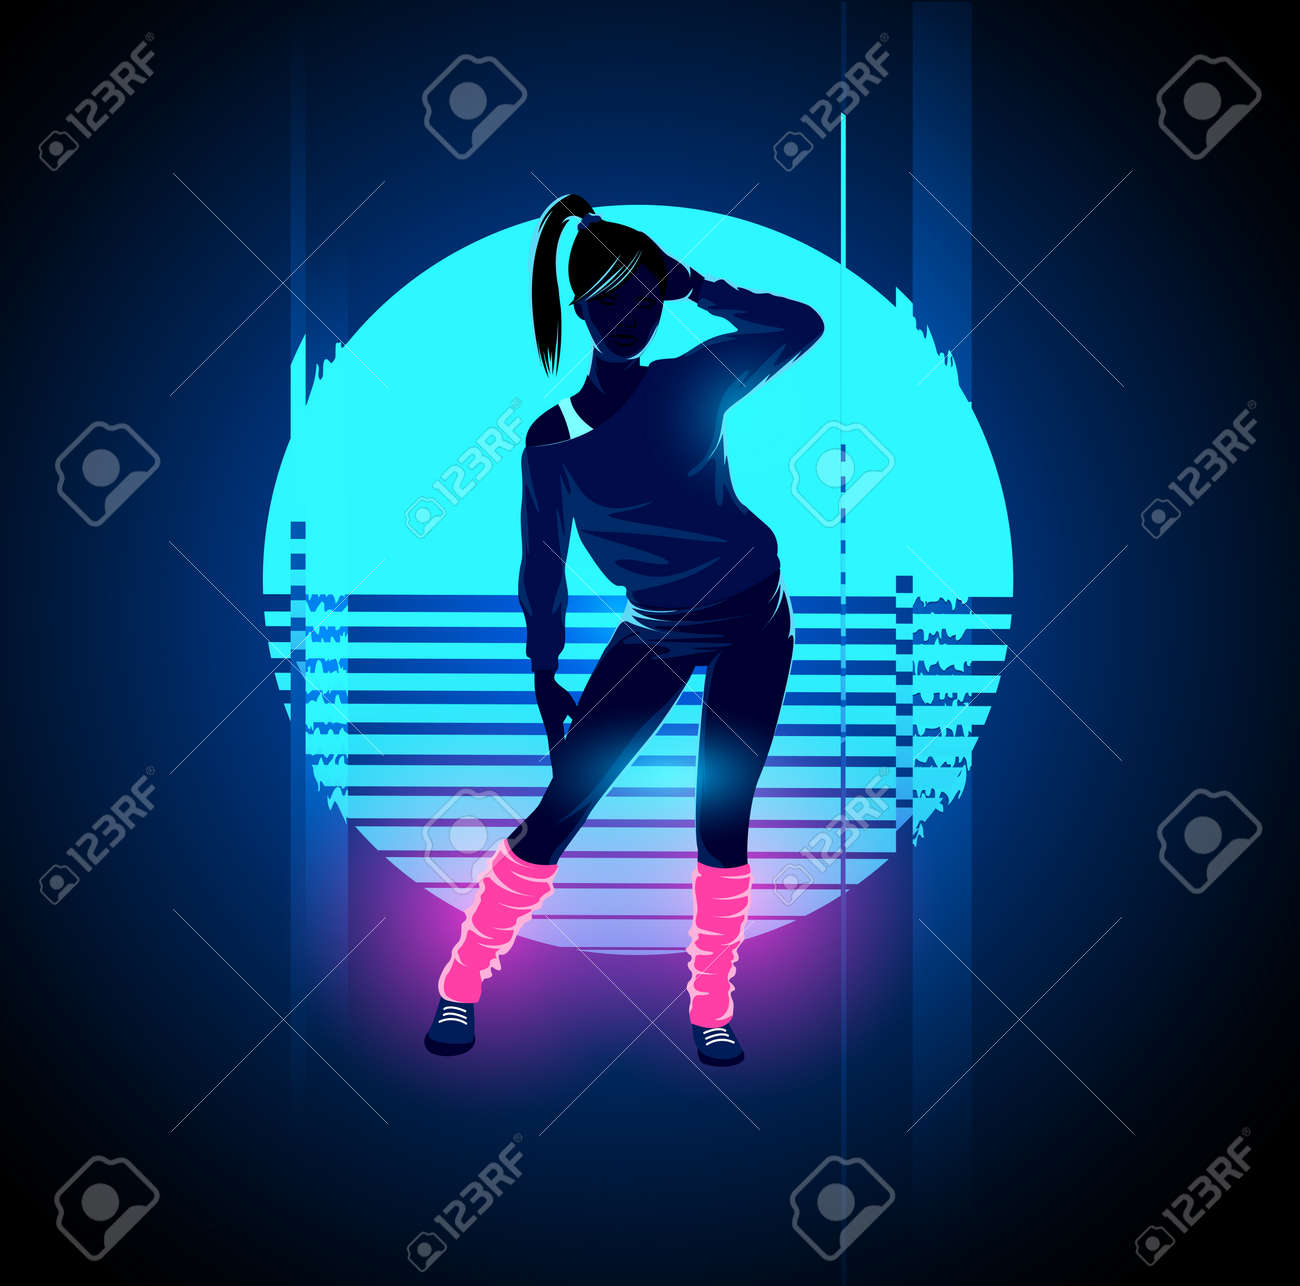 Retro 1980's glowing neon dancing lady with glitch sunset background. Vector illustration - 72483231